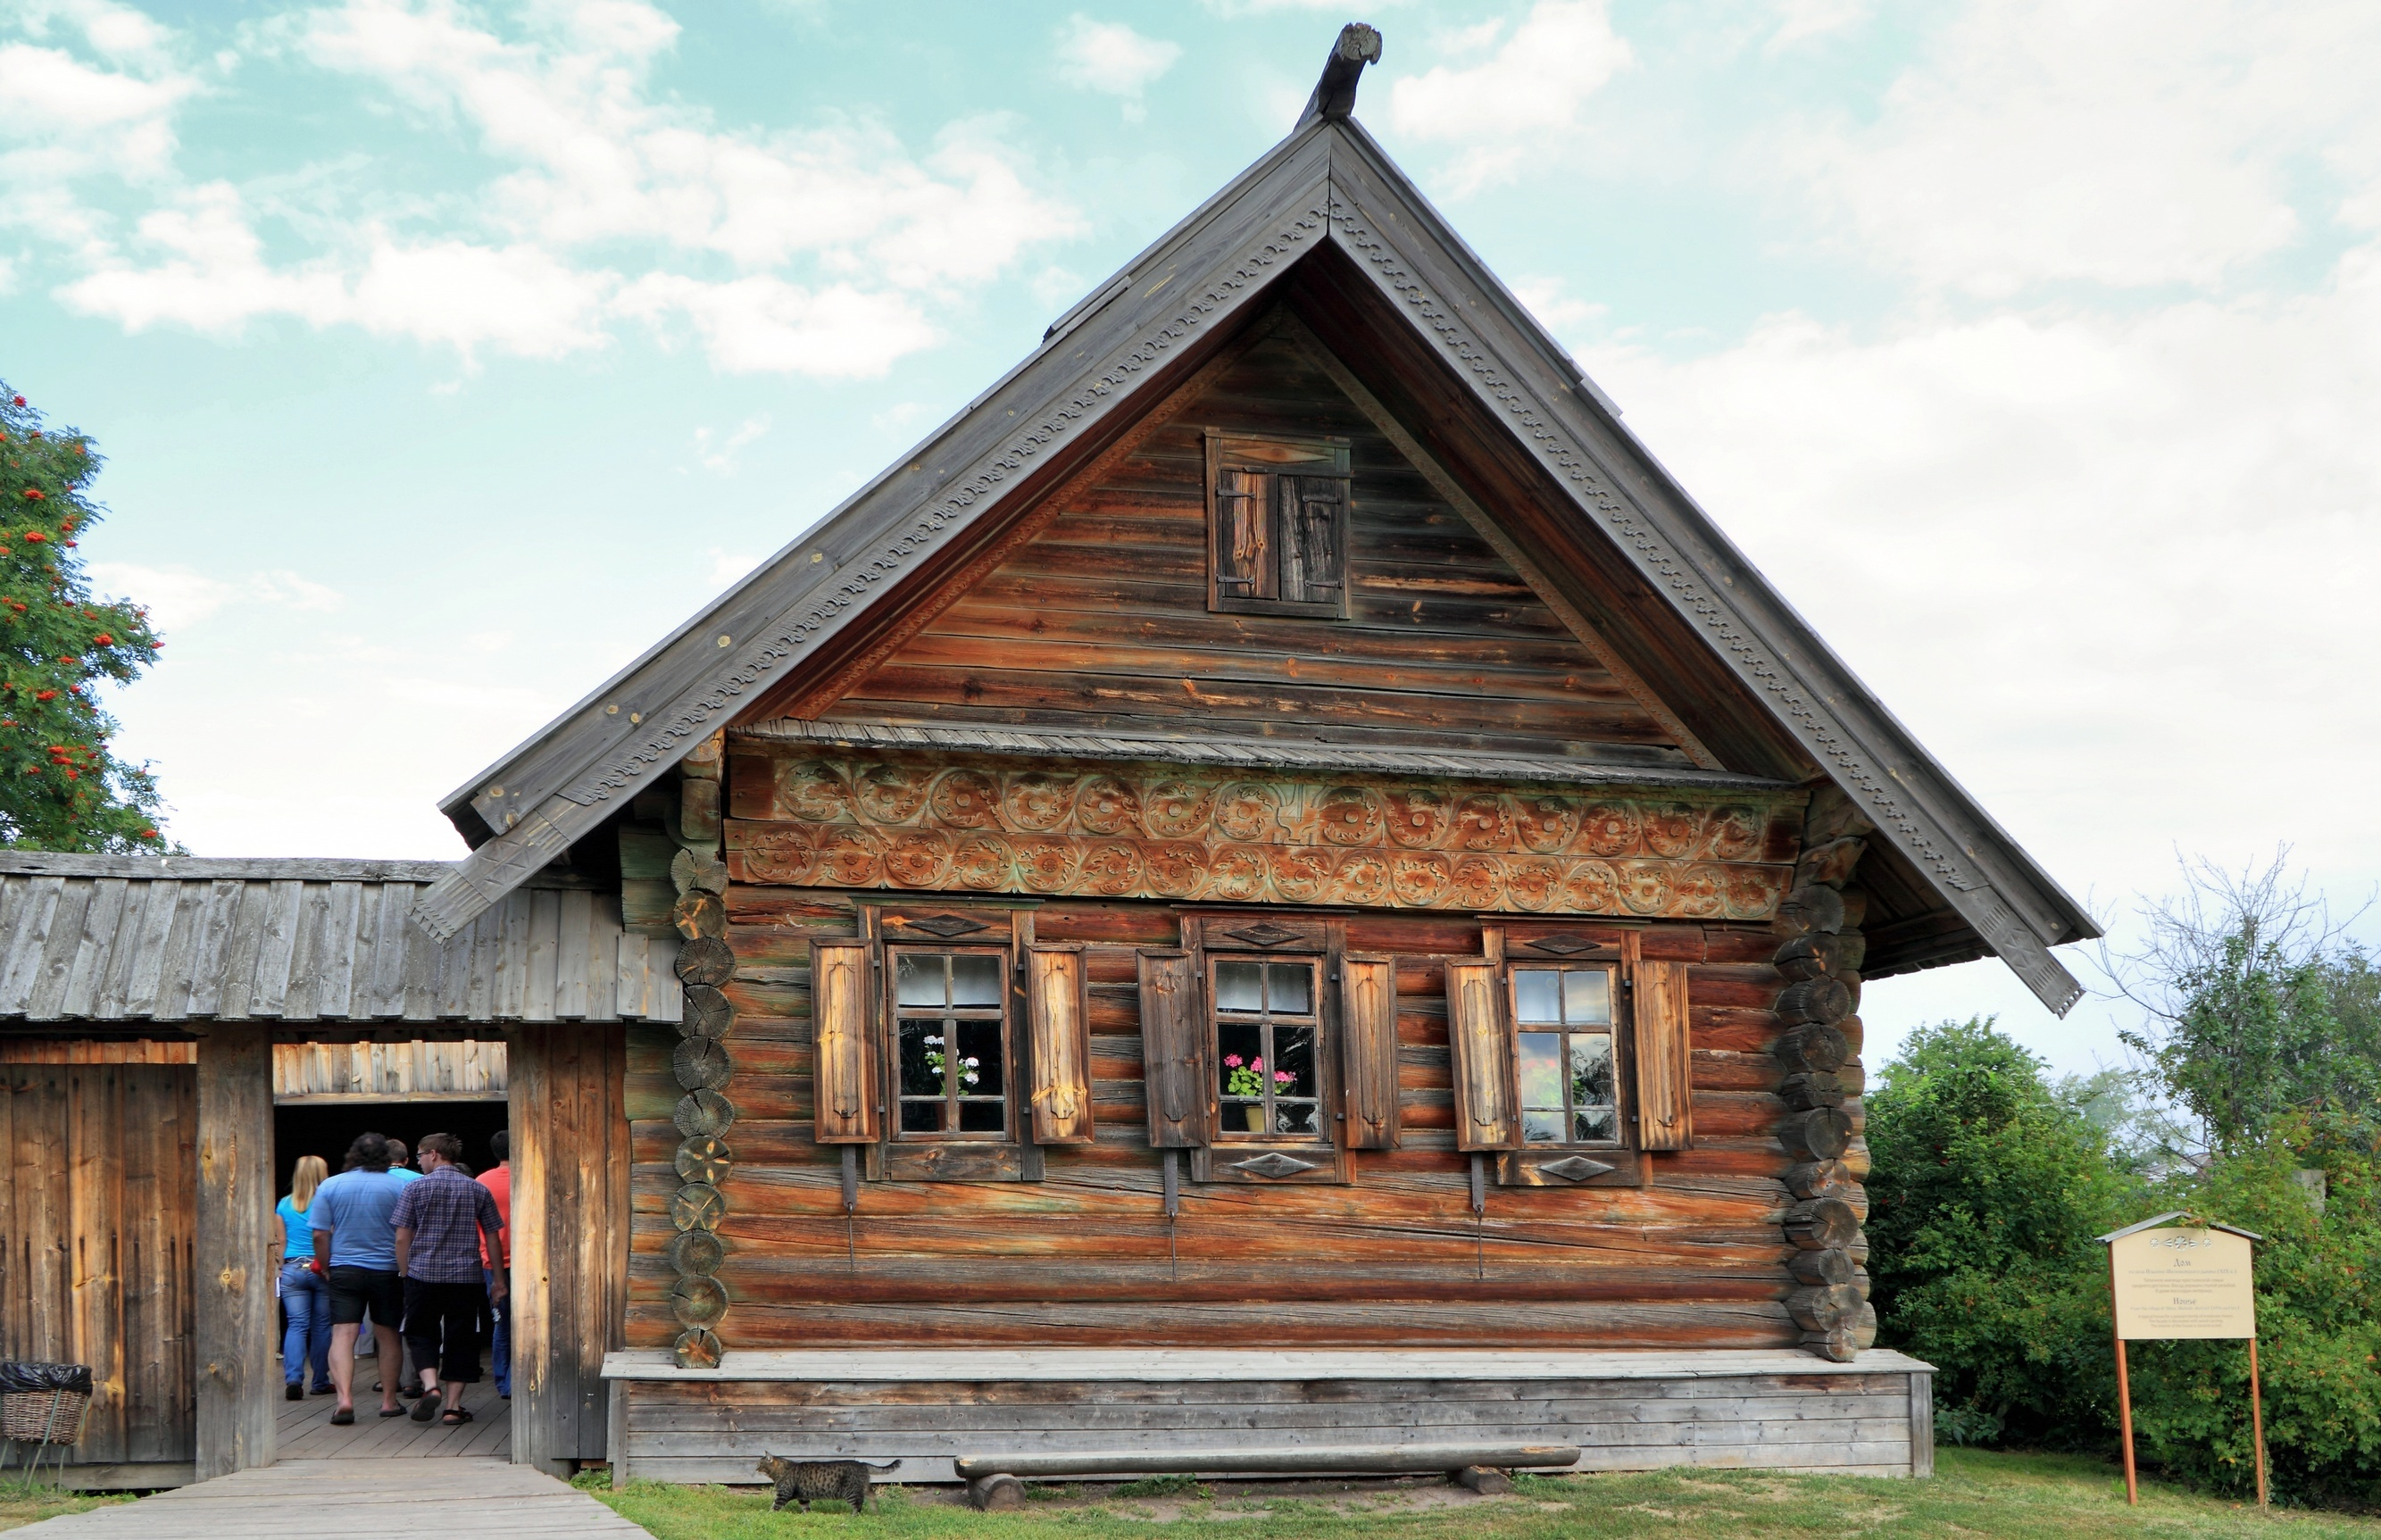 Suzdal - Museum of Wooden Architecture or the Ghost of the Dmitrievsky Pechora Monastery 69